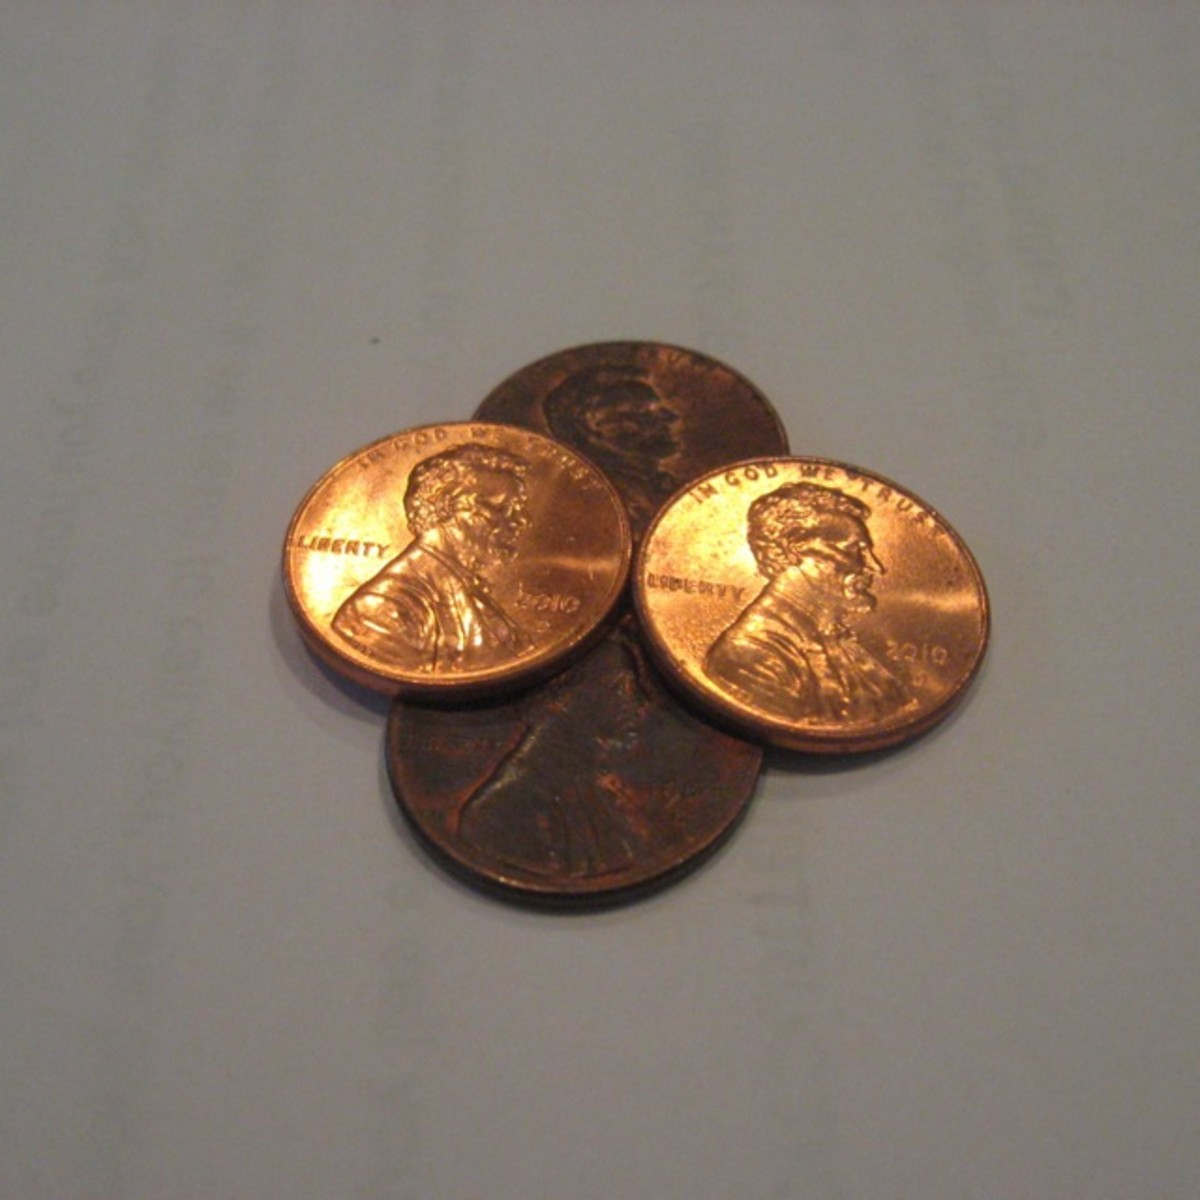 How to Clean a Penny - All About Cleaning Copper Pennies